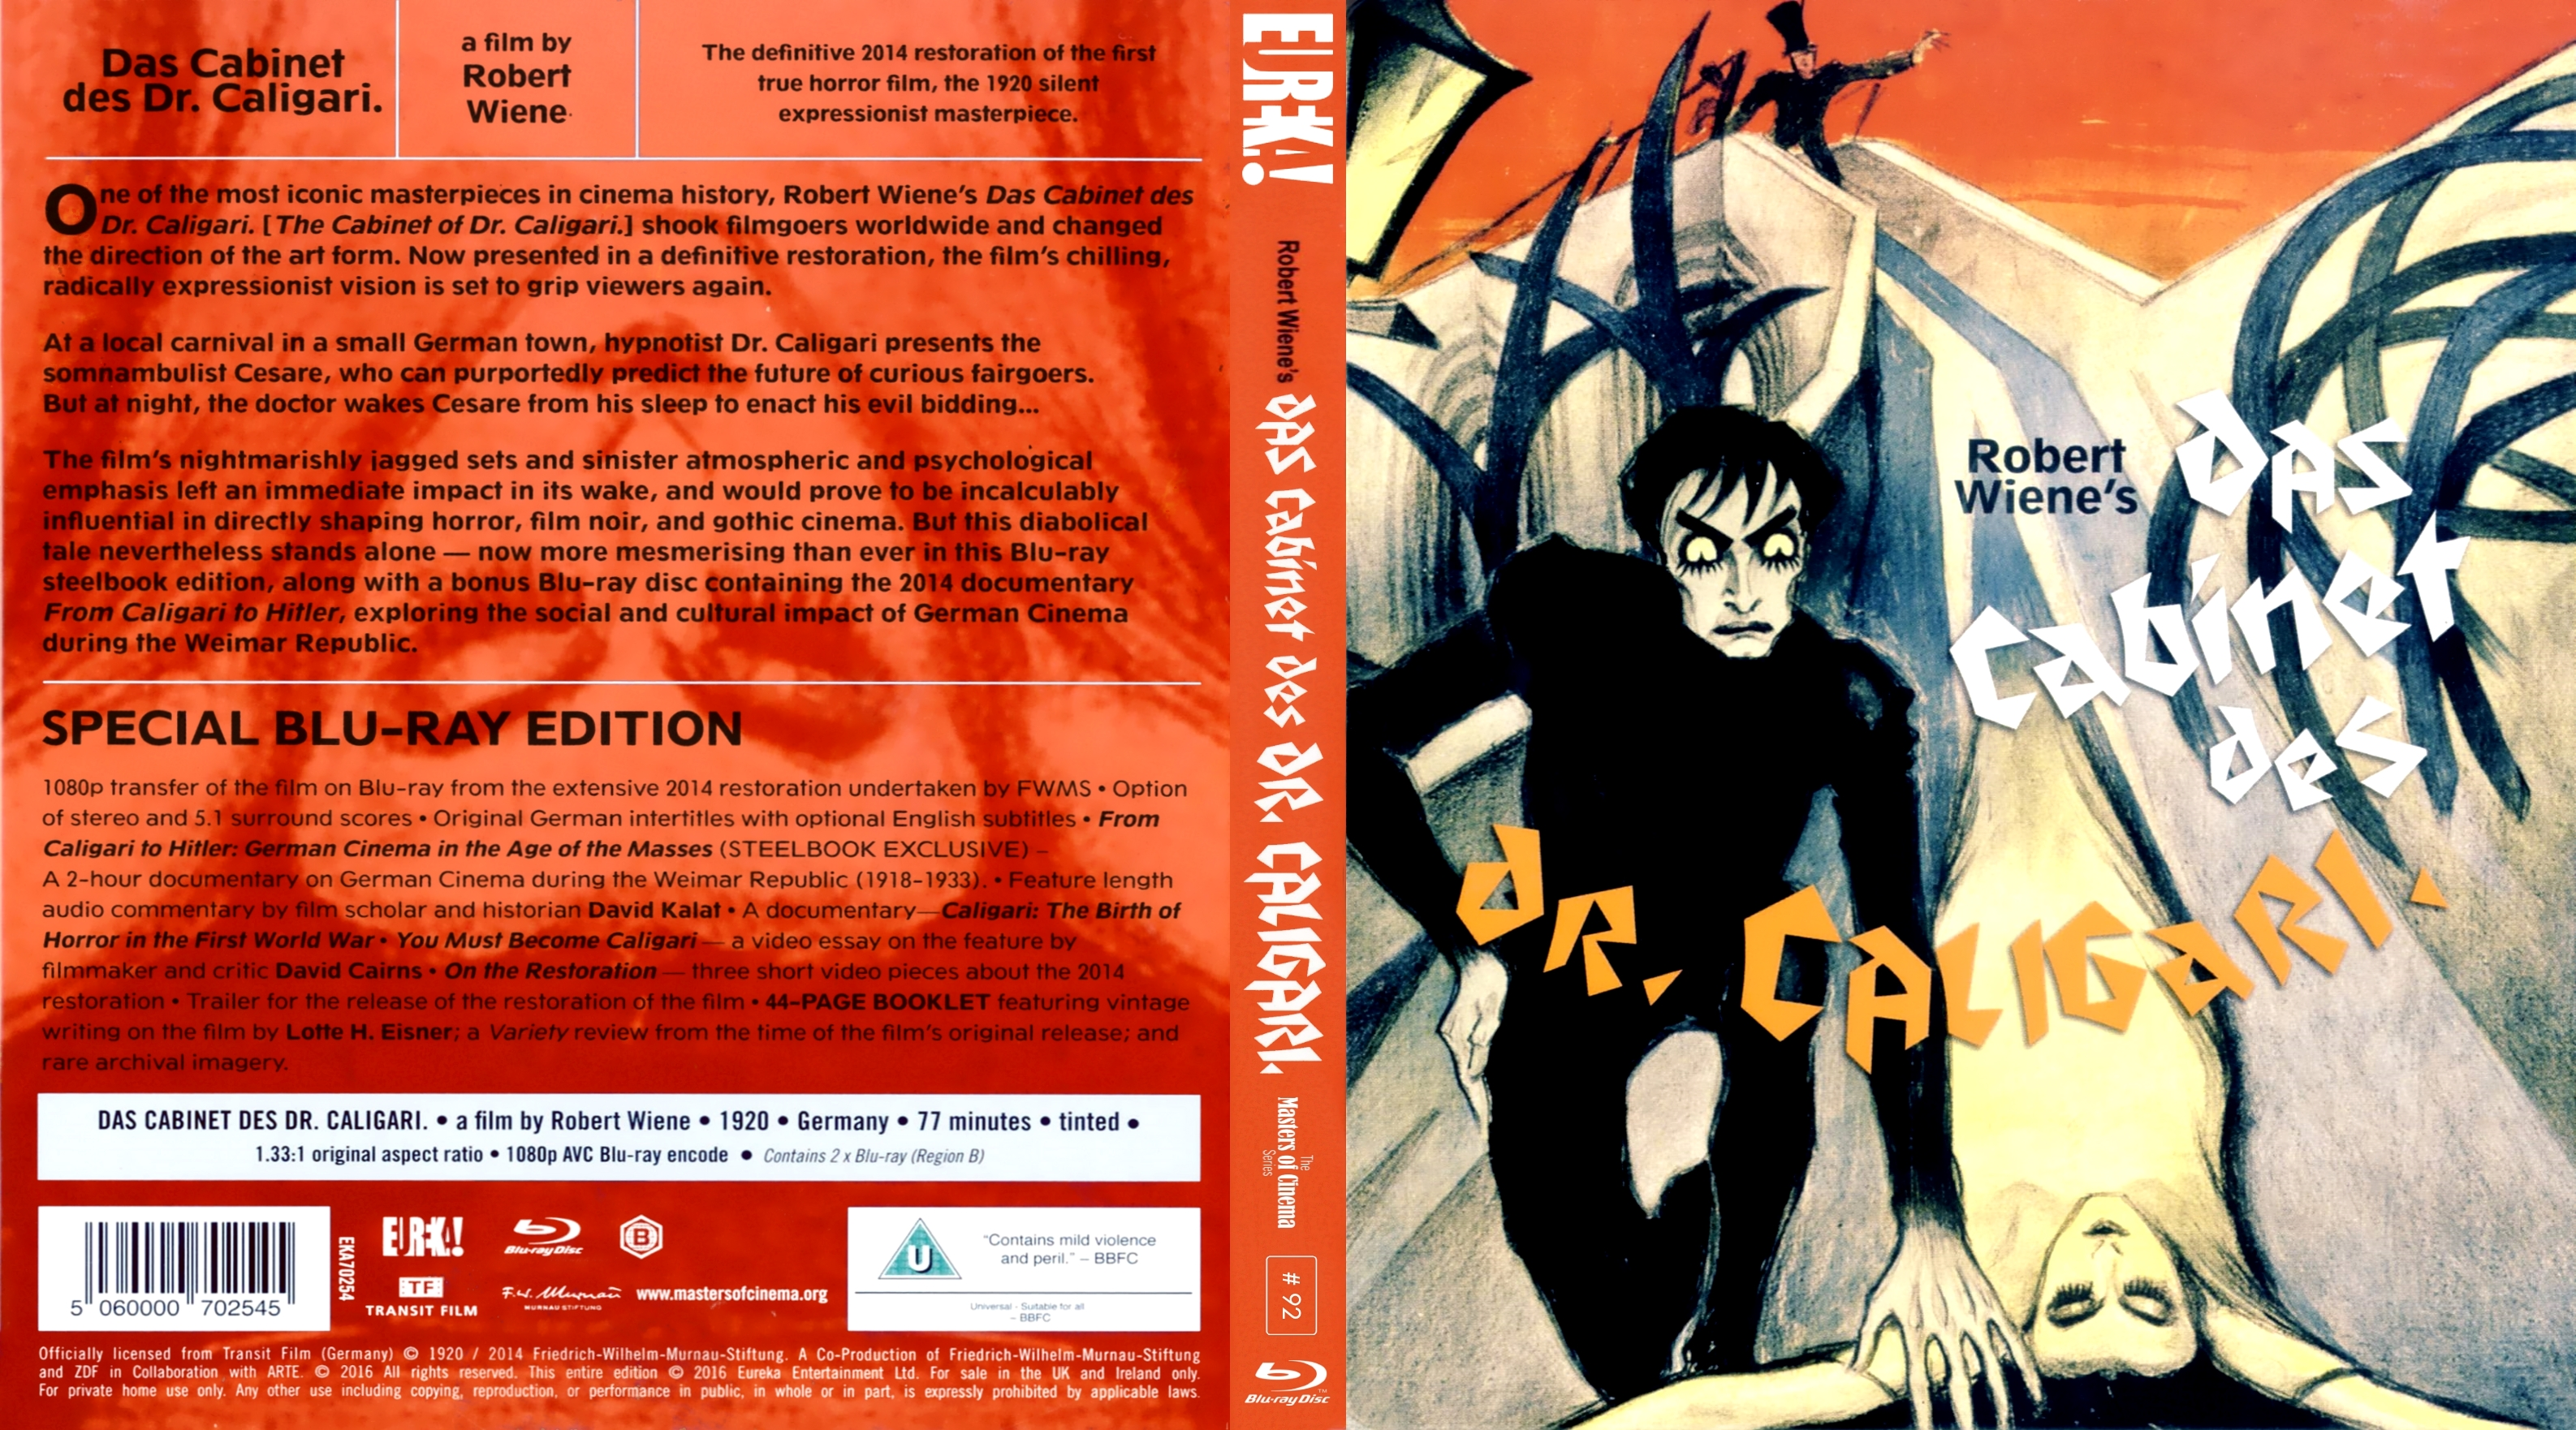 foredoomed failure of dr caligari But never mind it: a coven of witches gathers on a foredoomed slope – and in a setting where eight mystagogues choose to travel across light years o' spirit.